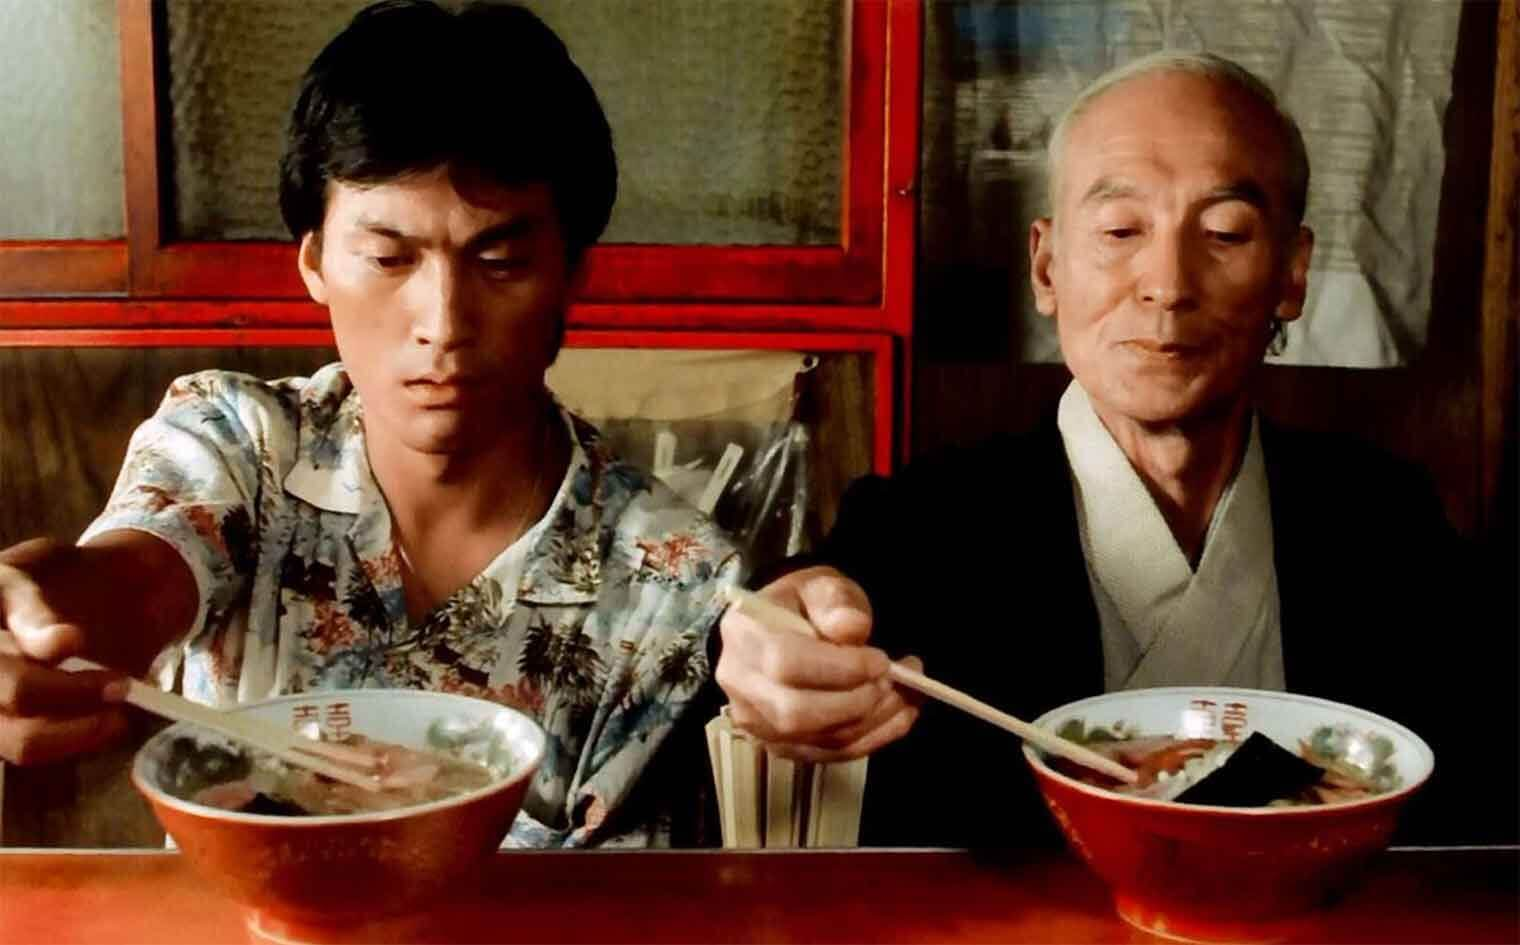 Ramen scene from Tampopo